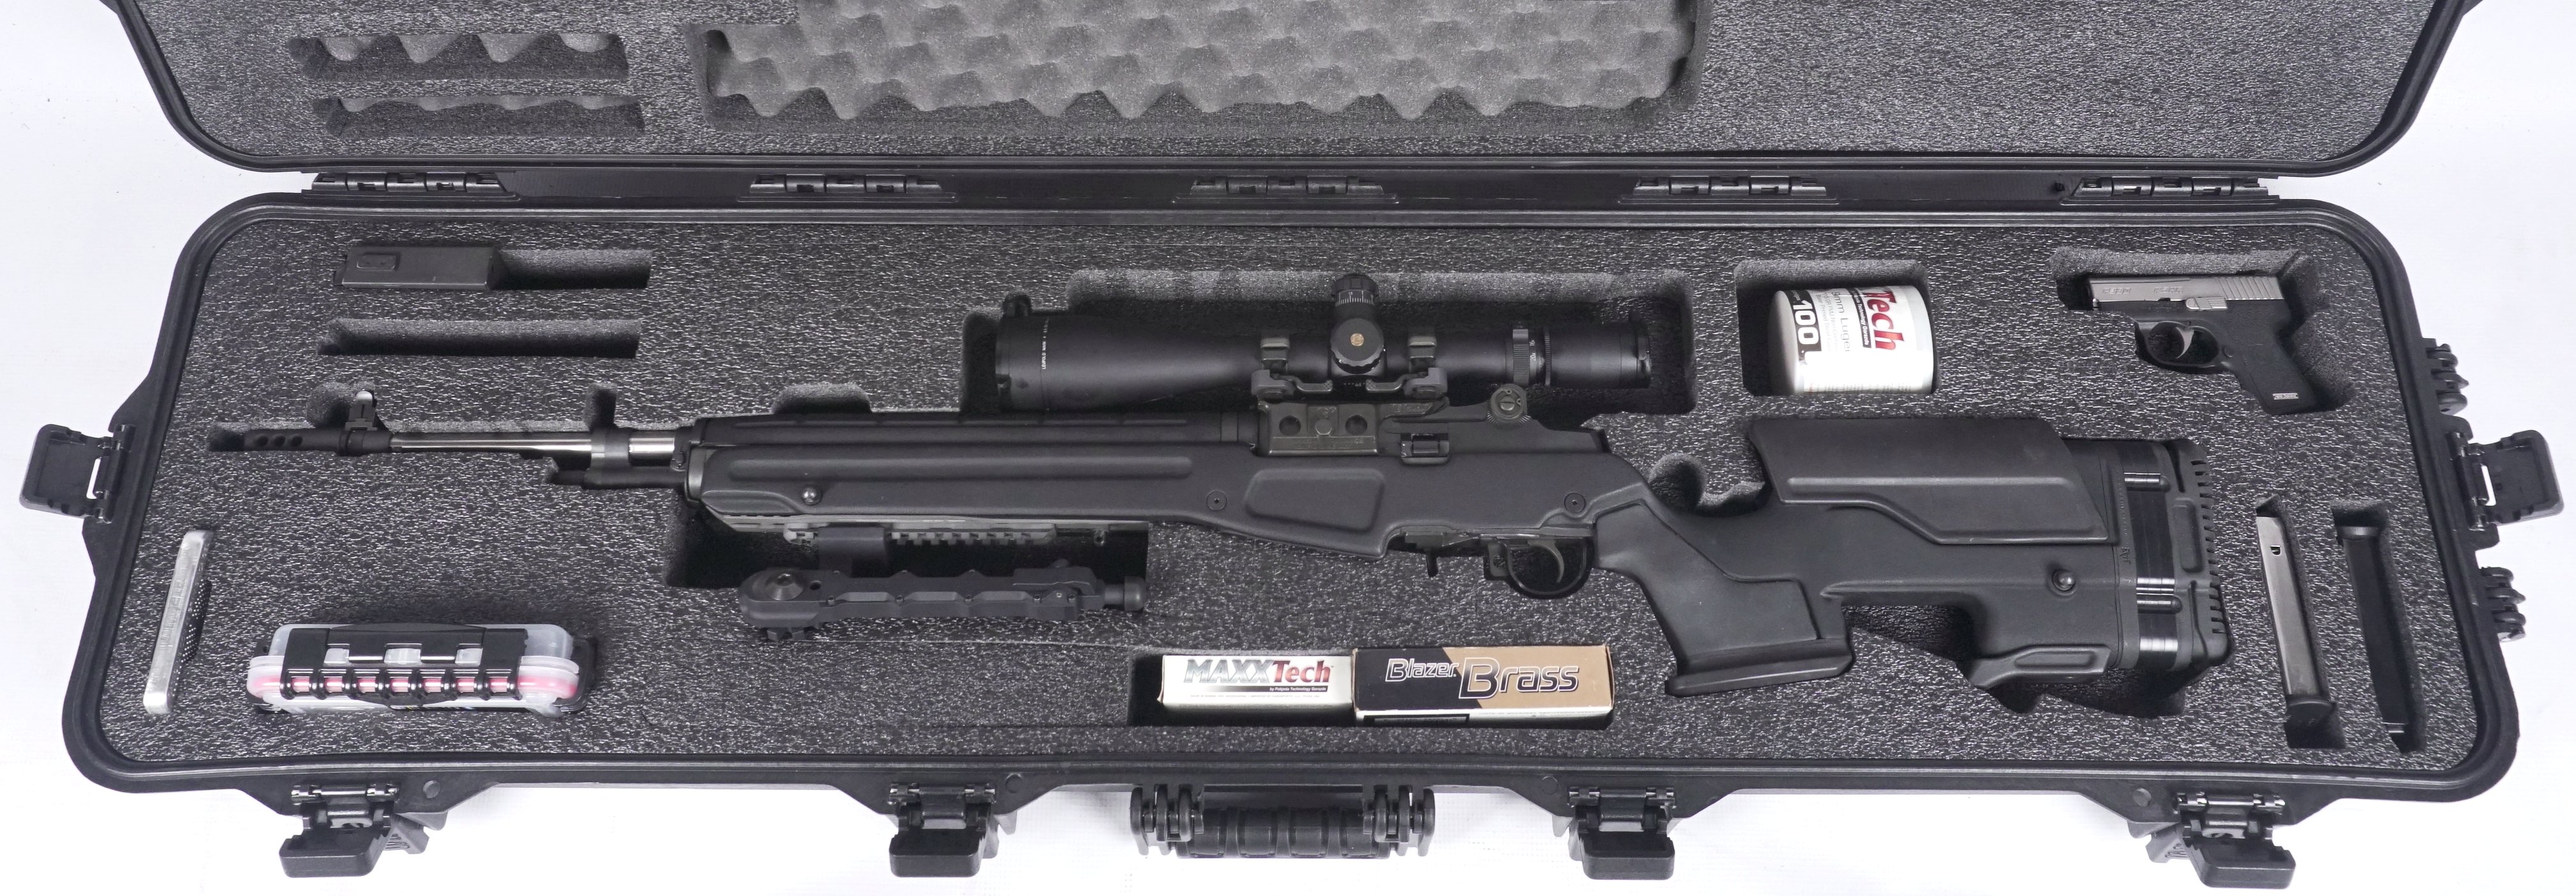 Case Club Waterproof Springfield M1A Rifle Case with Silica Gel & Accessory  Box